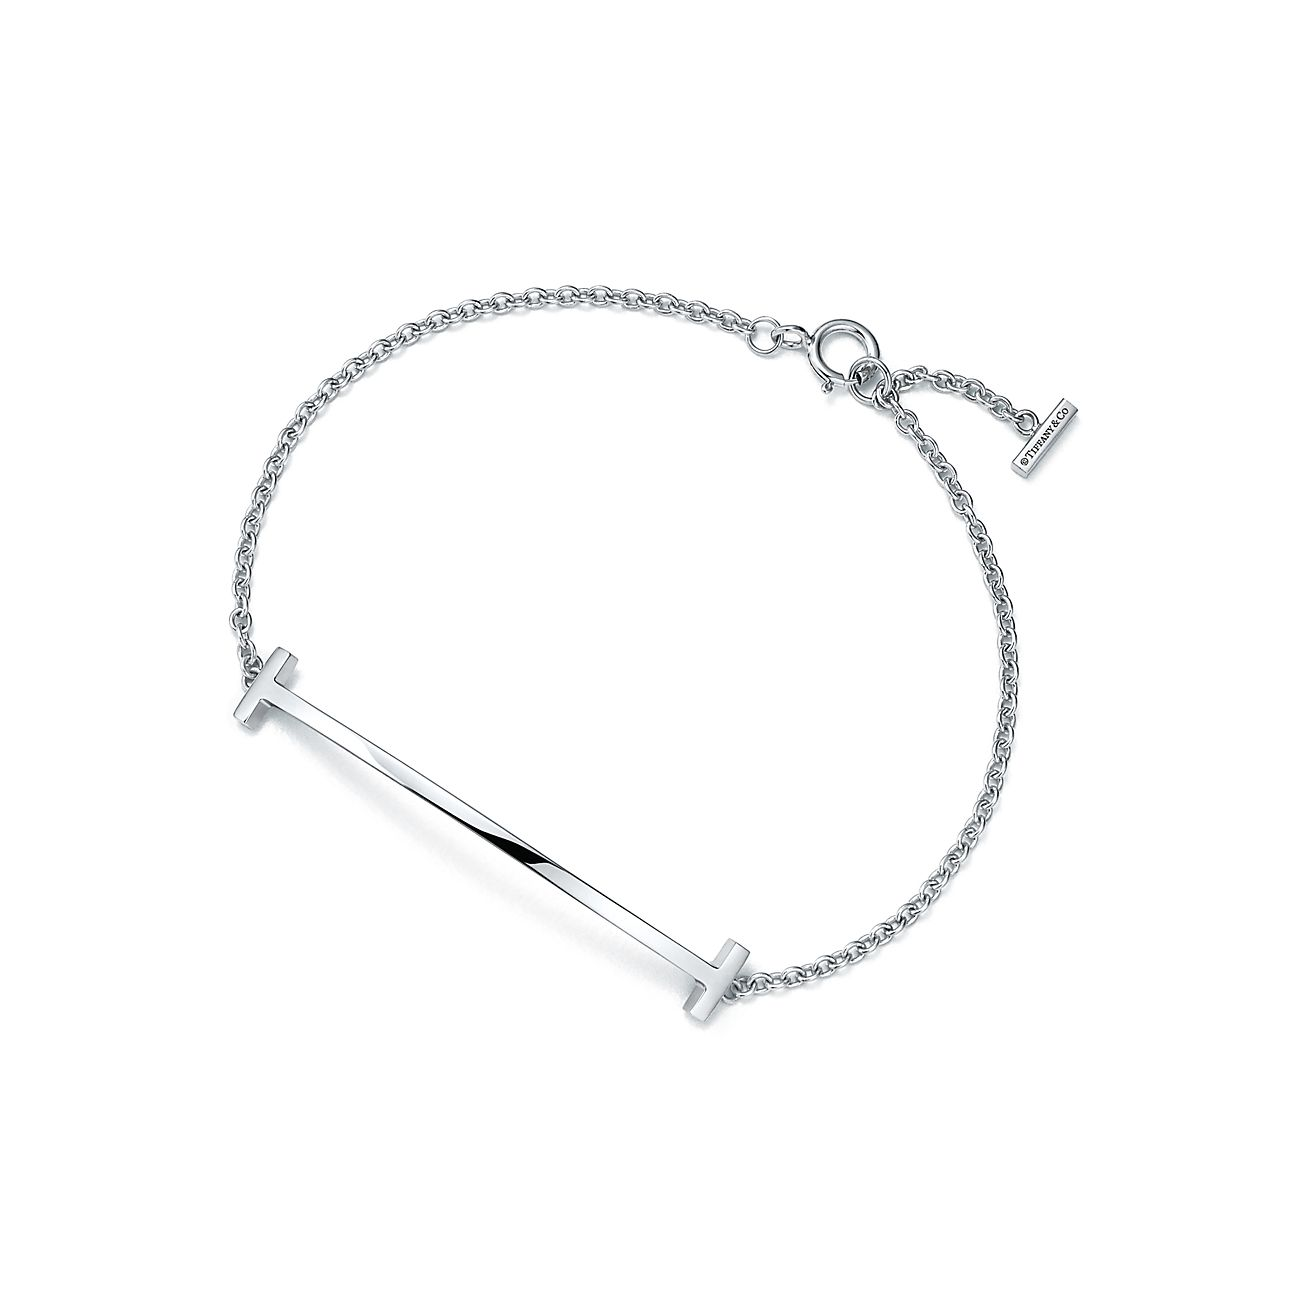 Tiffany T Smile Bracelet